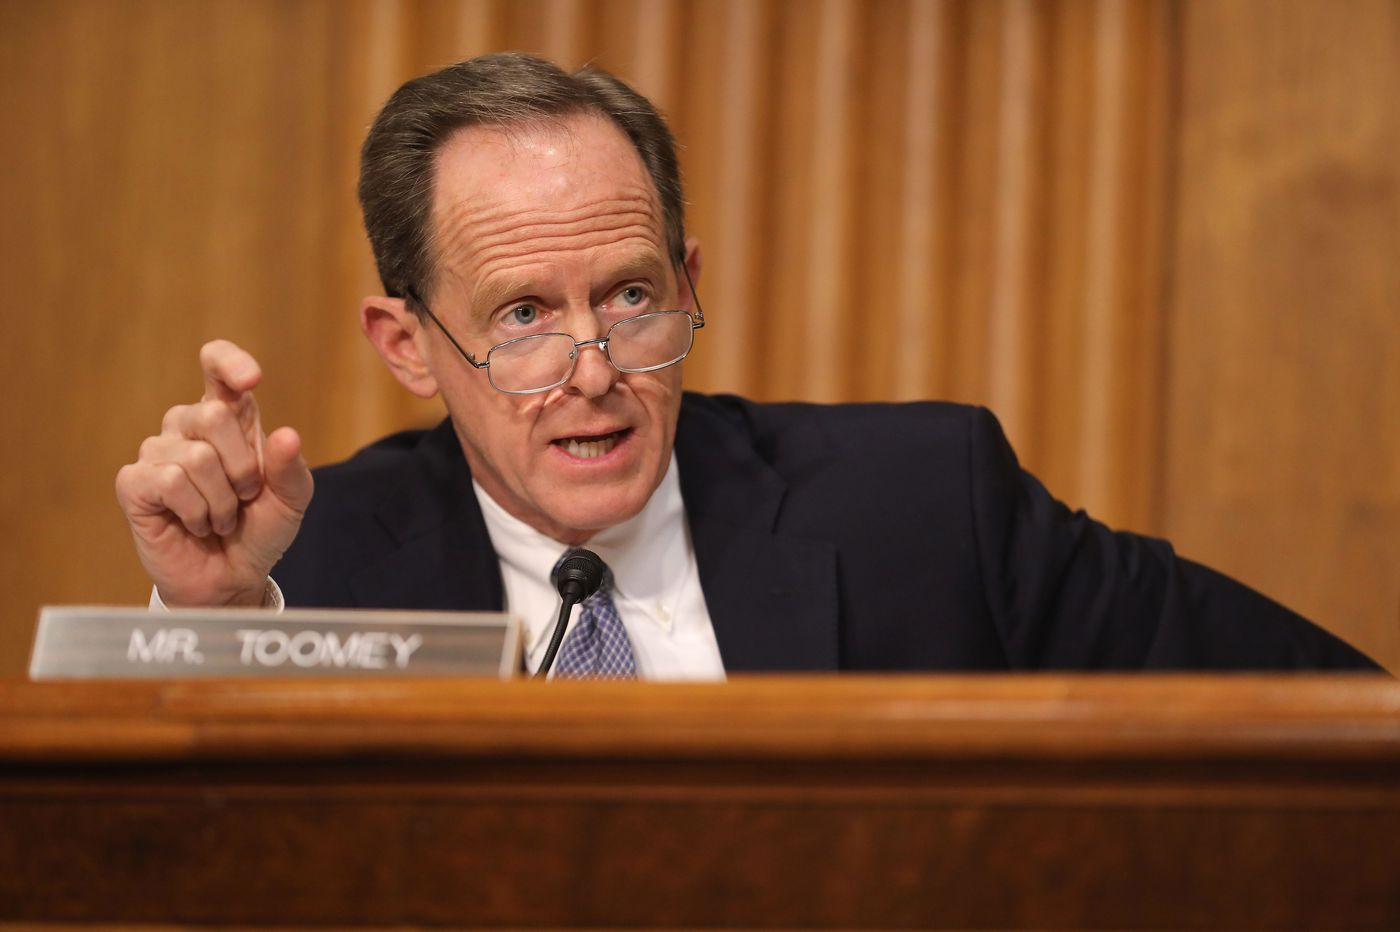 Will Homemade Masks Stop Coronavirus From Spreading Fact Checking Sen Pat Toomey S Claim Politifact